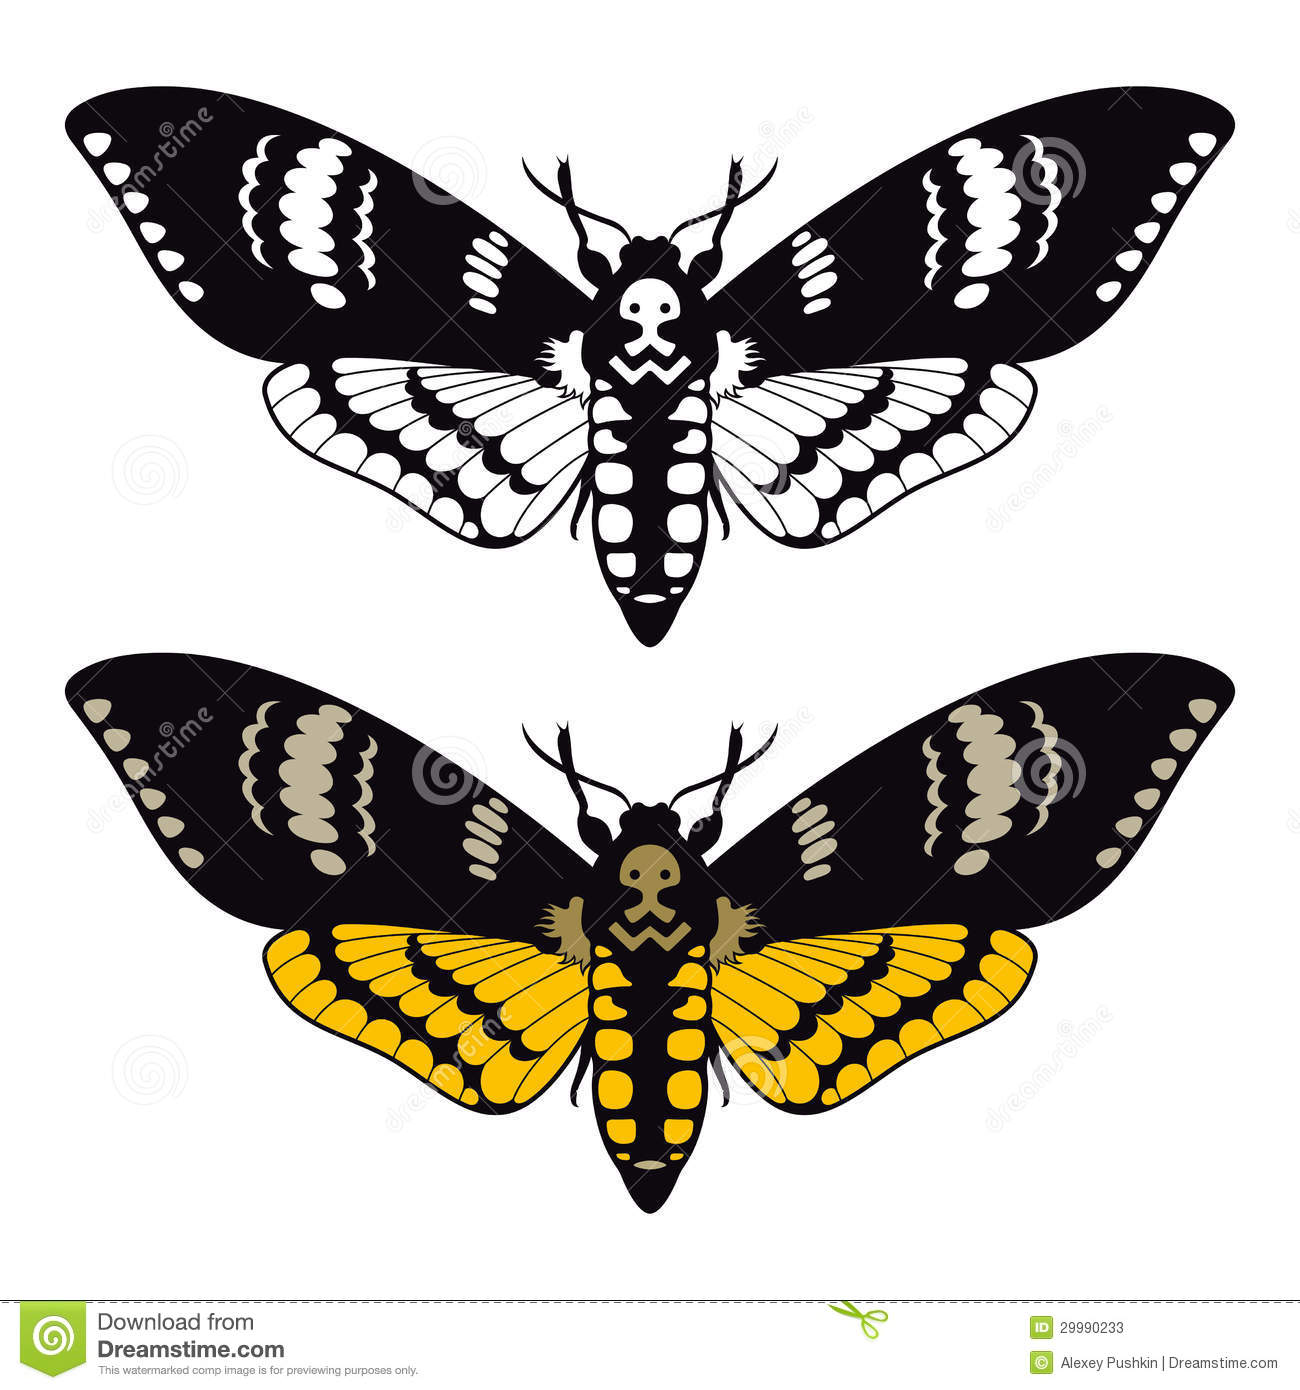 Grunge Stain Collection: Deaths Head Hawk Moth Stock Vector. Illustration Of